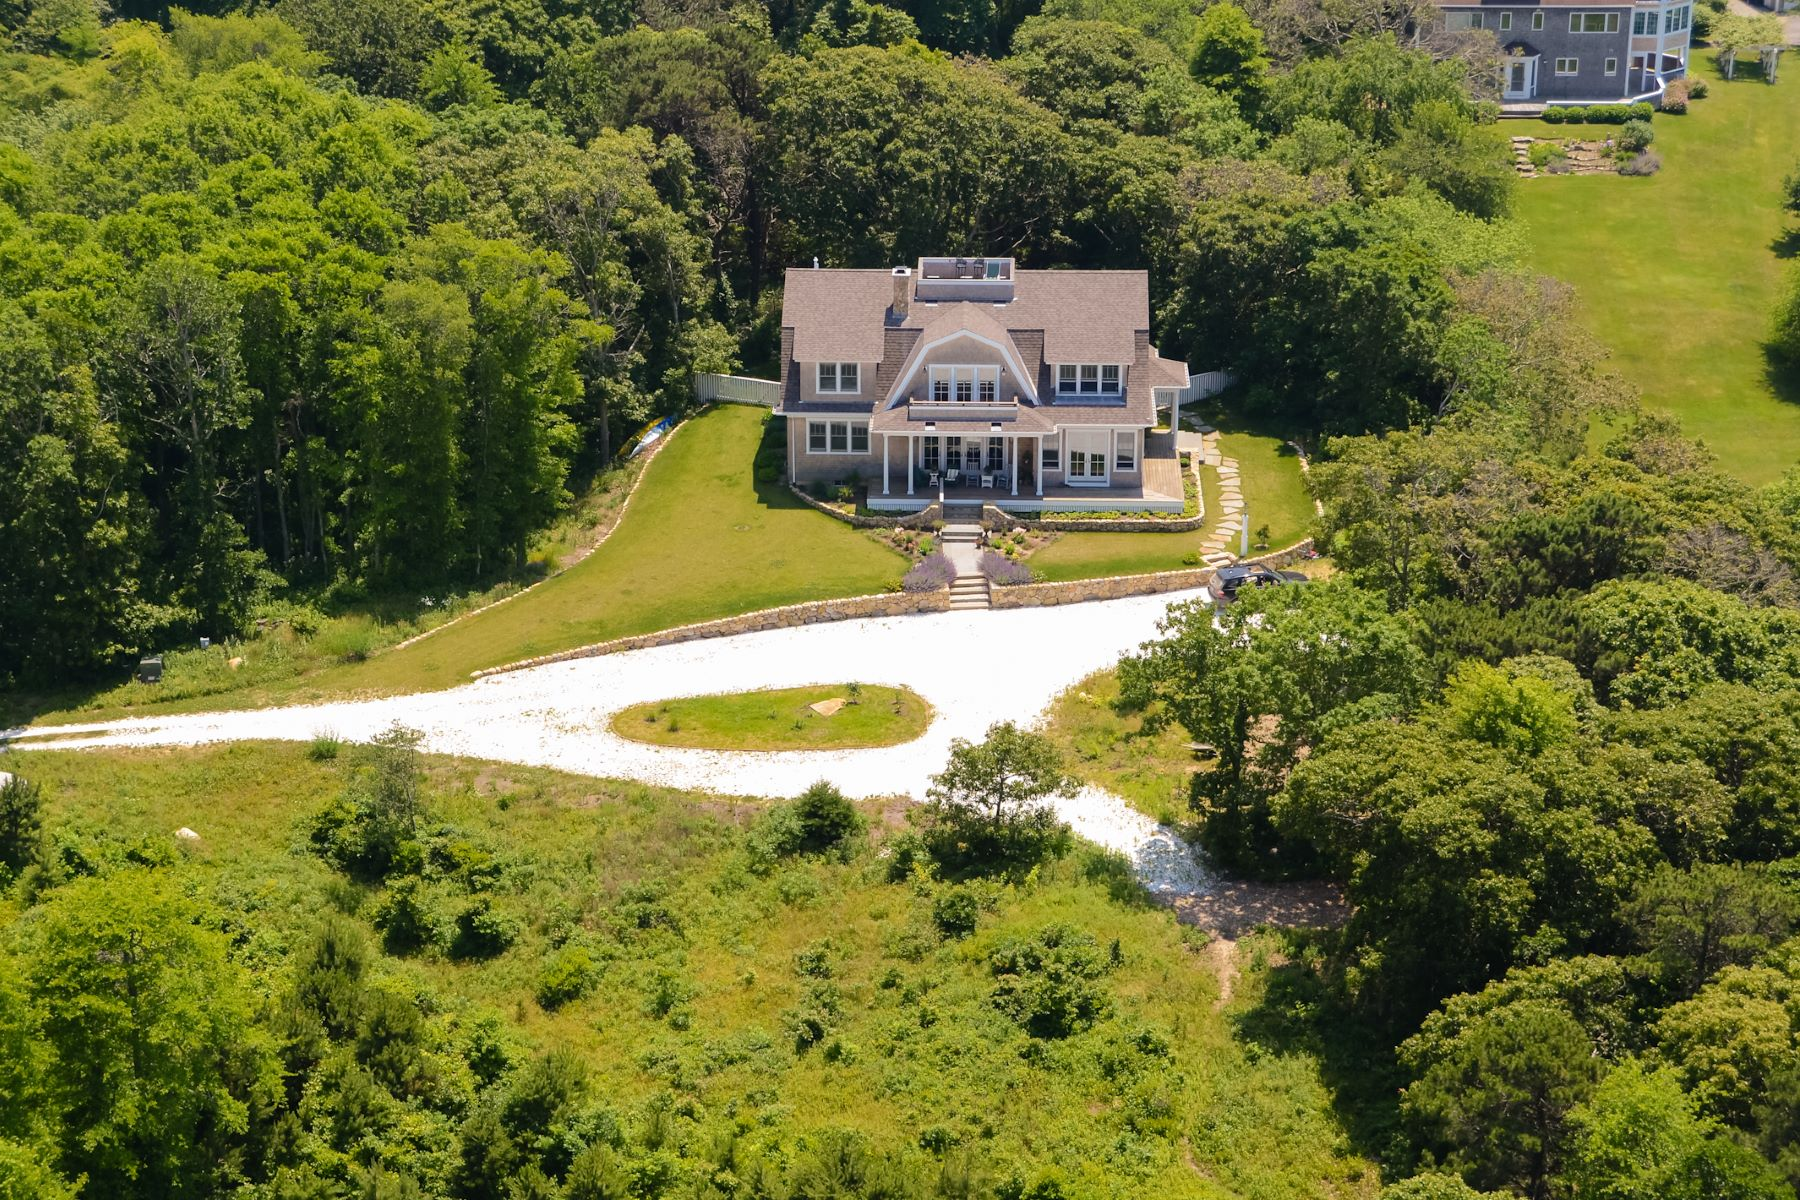 Single Family Homes for Active at 8.6 Acre Estate with Private Association Beaches 94 Norton Farm Road West Tisbury, Massachusetts 02575 United States